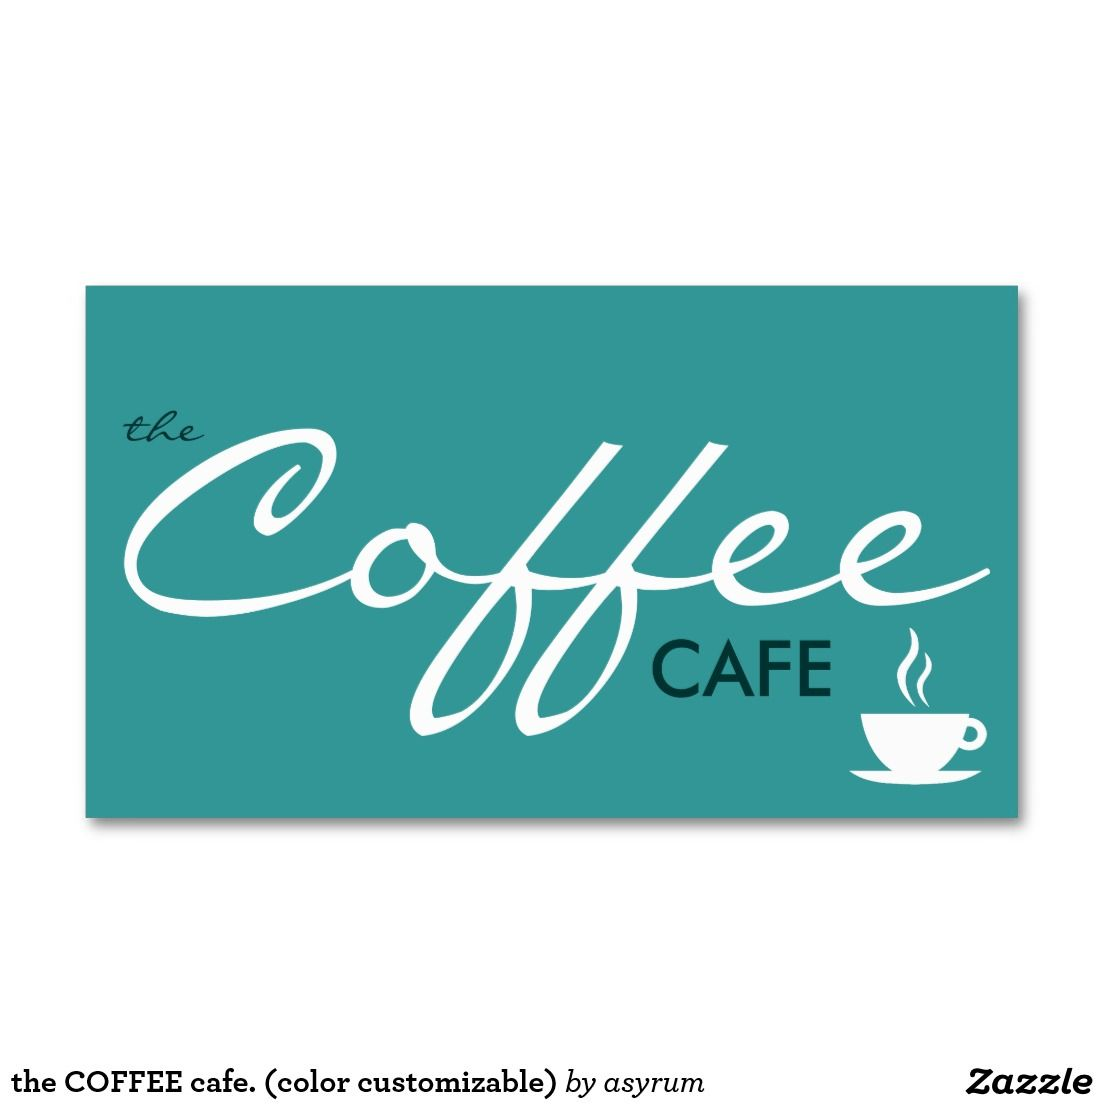 The coffee cafe color customizable business card one a day the coffee cafe color customizable double sided standard business cards 05202015 to berlin germany asyrum reheart Gallery